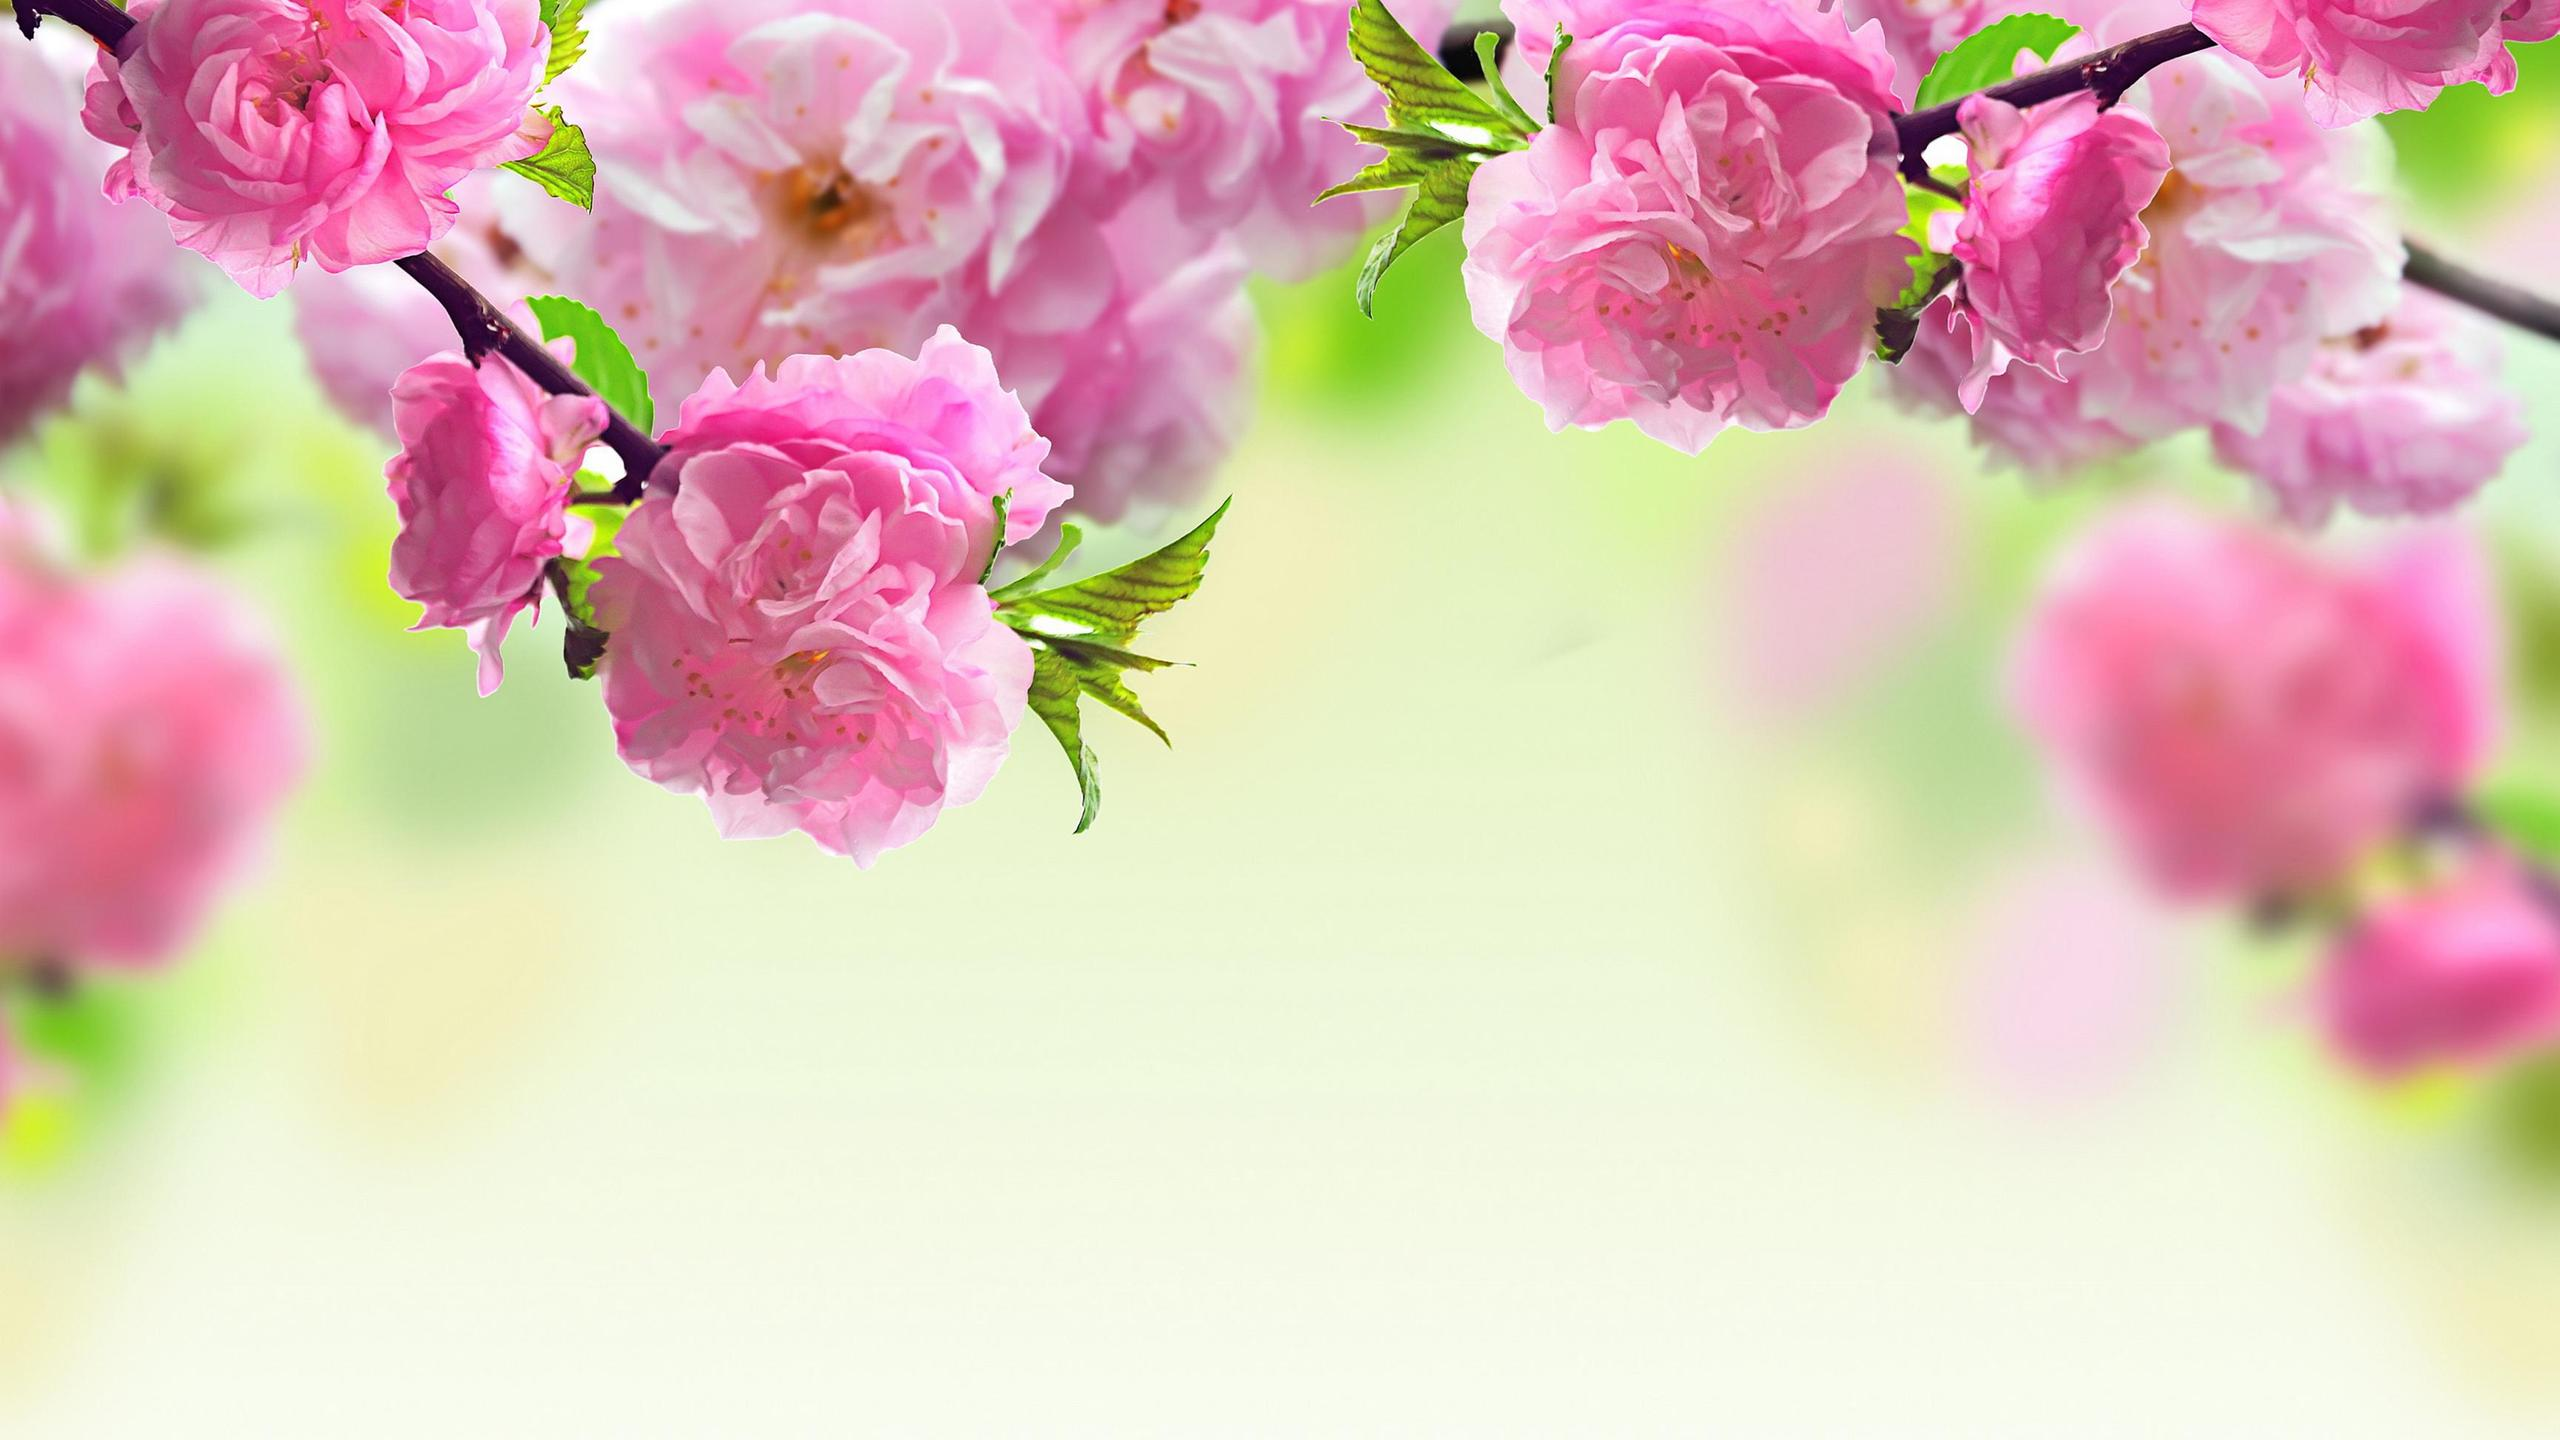 Tree blossoming - Beautiful pink spring flowers Wallpaper Download ...